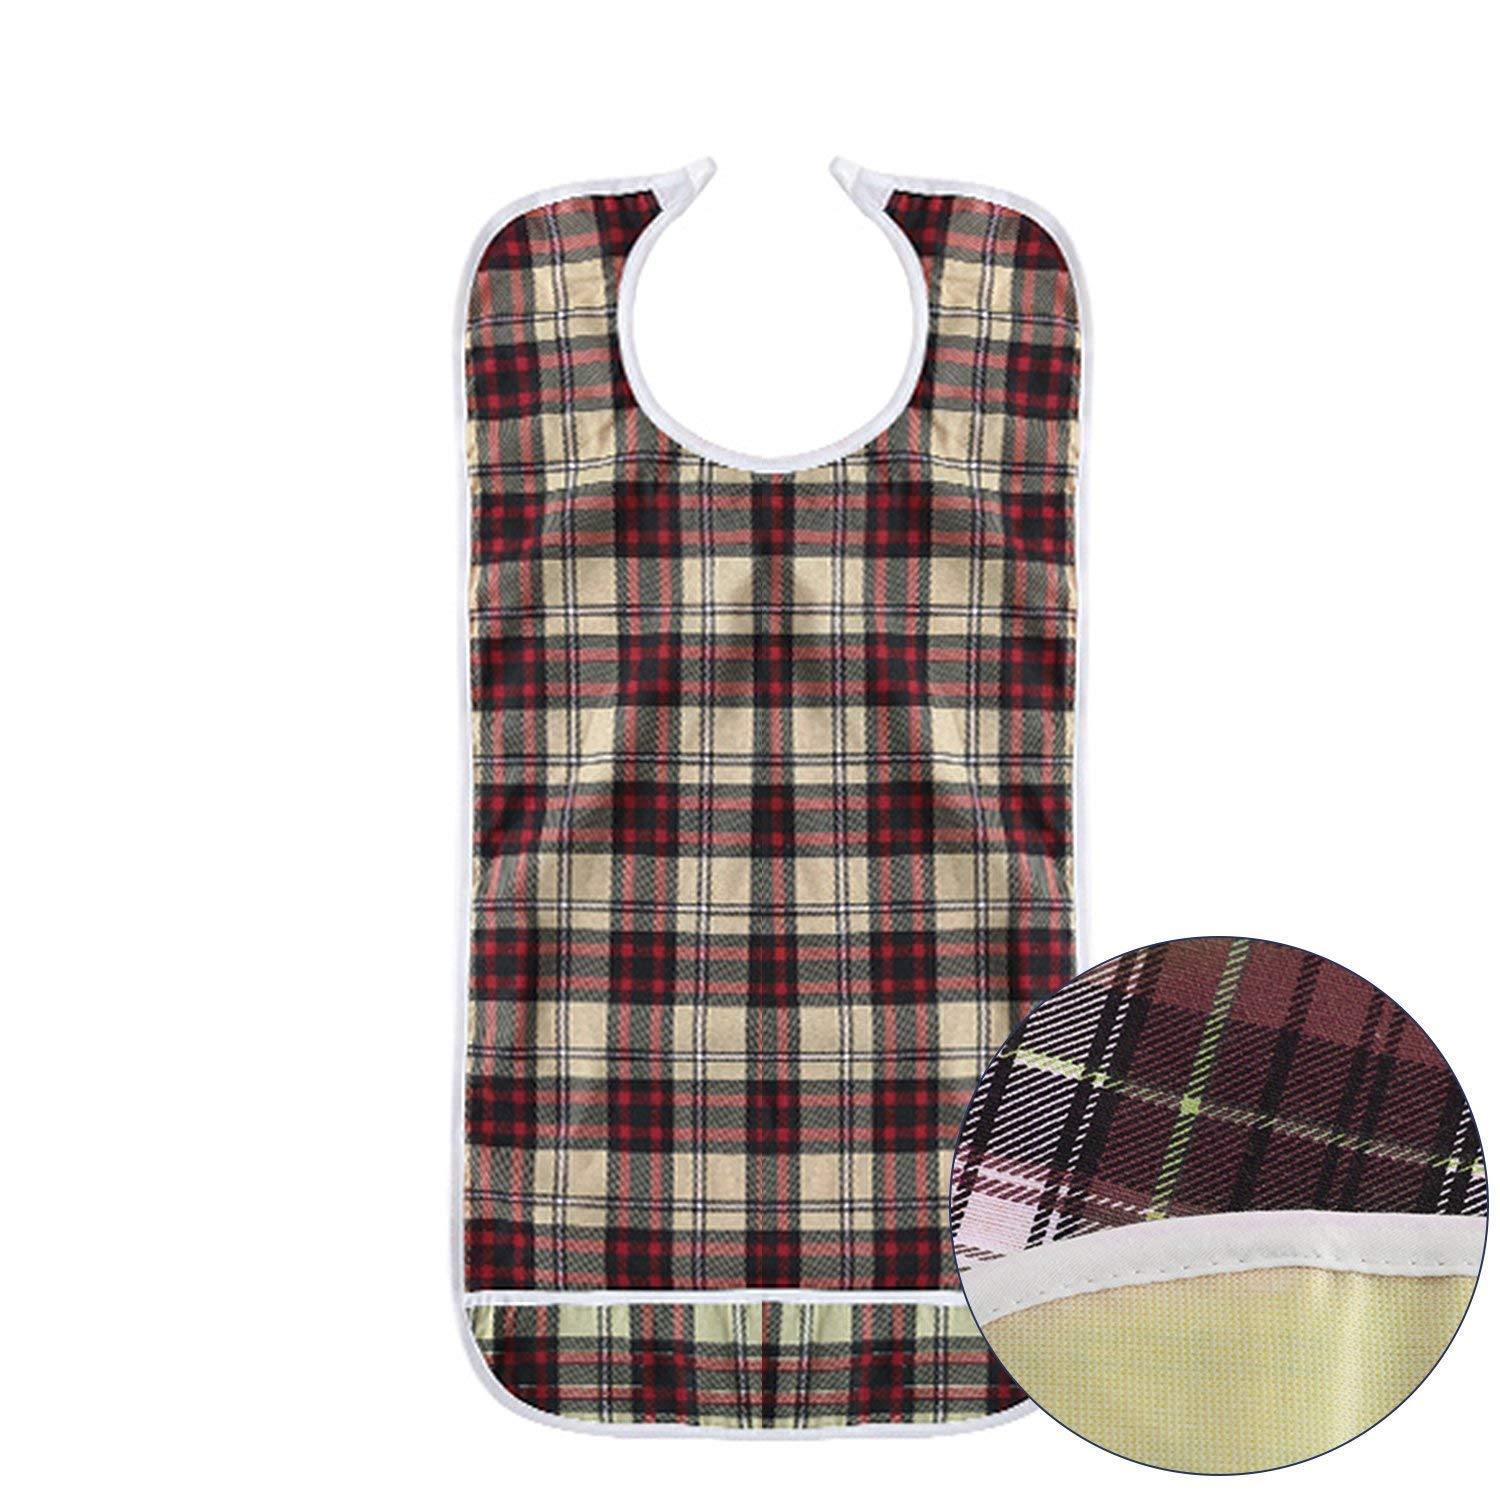 Adult Bibs - Double Layer Waterproof Mealtime Clothes Protector,Reusable Large Long Aid Bib Apron with Food Catcher for Elderly Men Women Disability (Khaki)